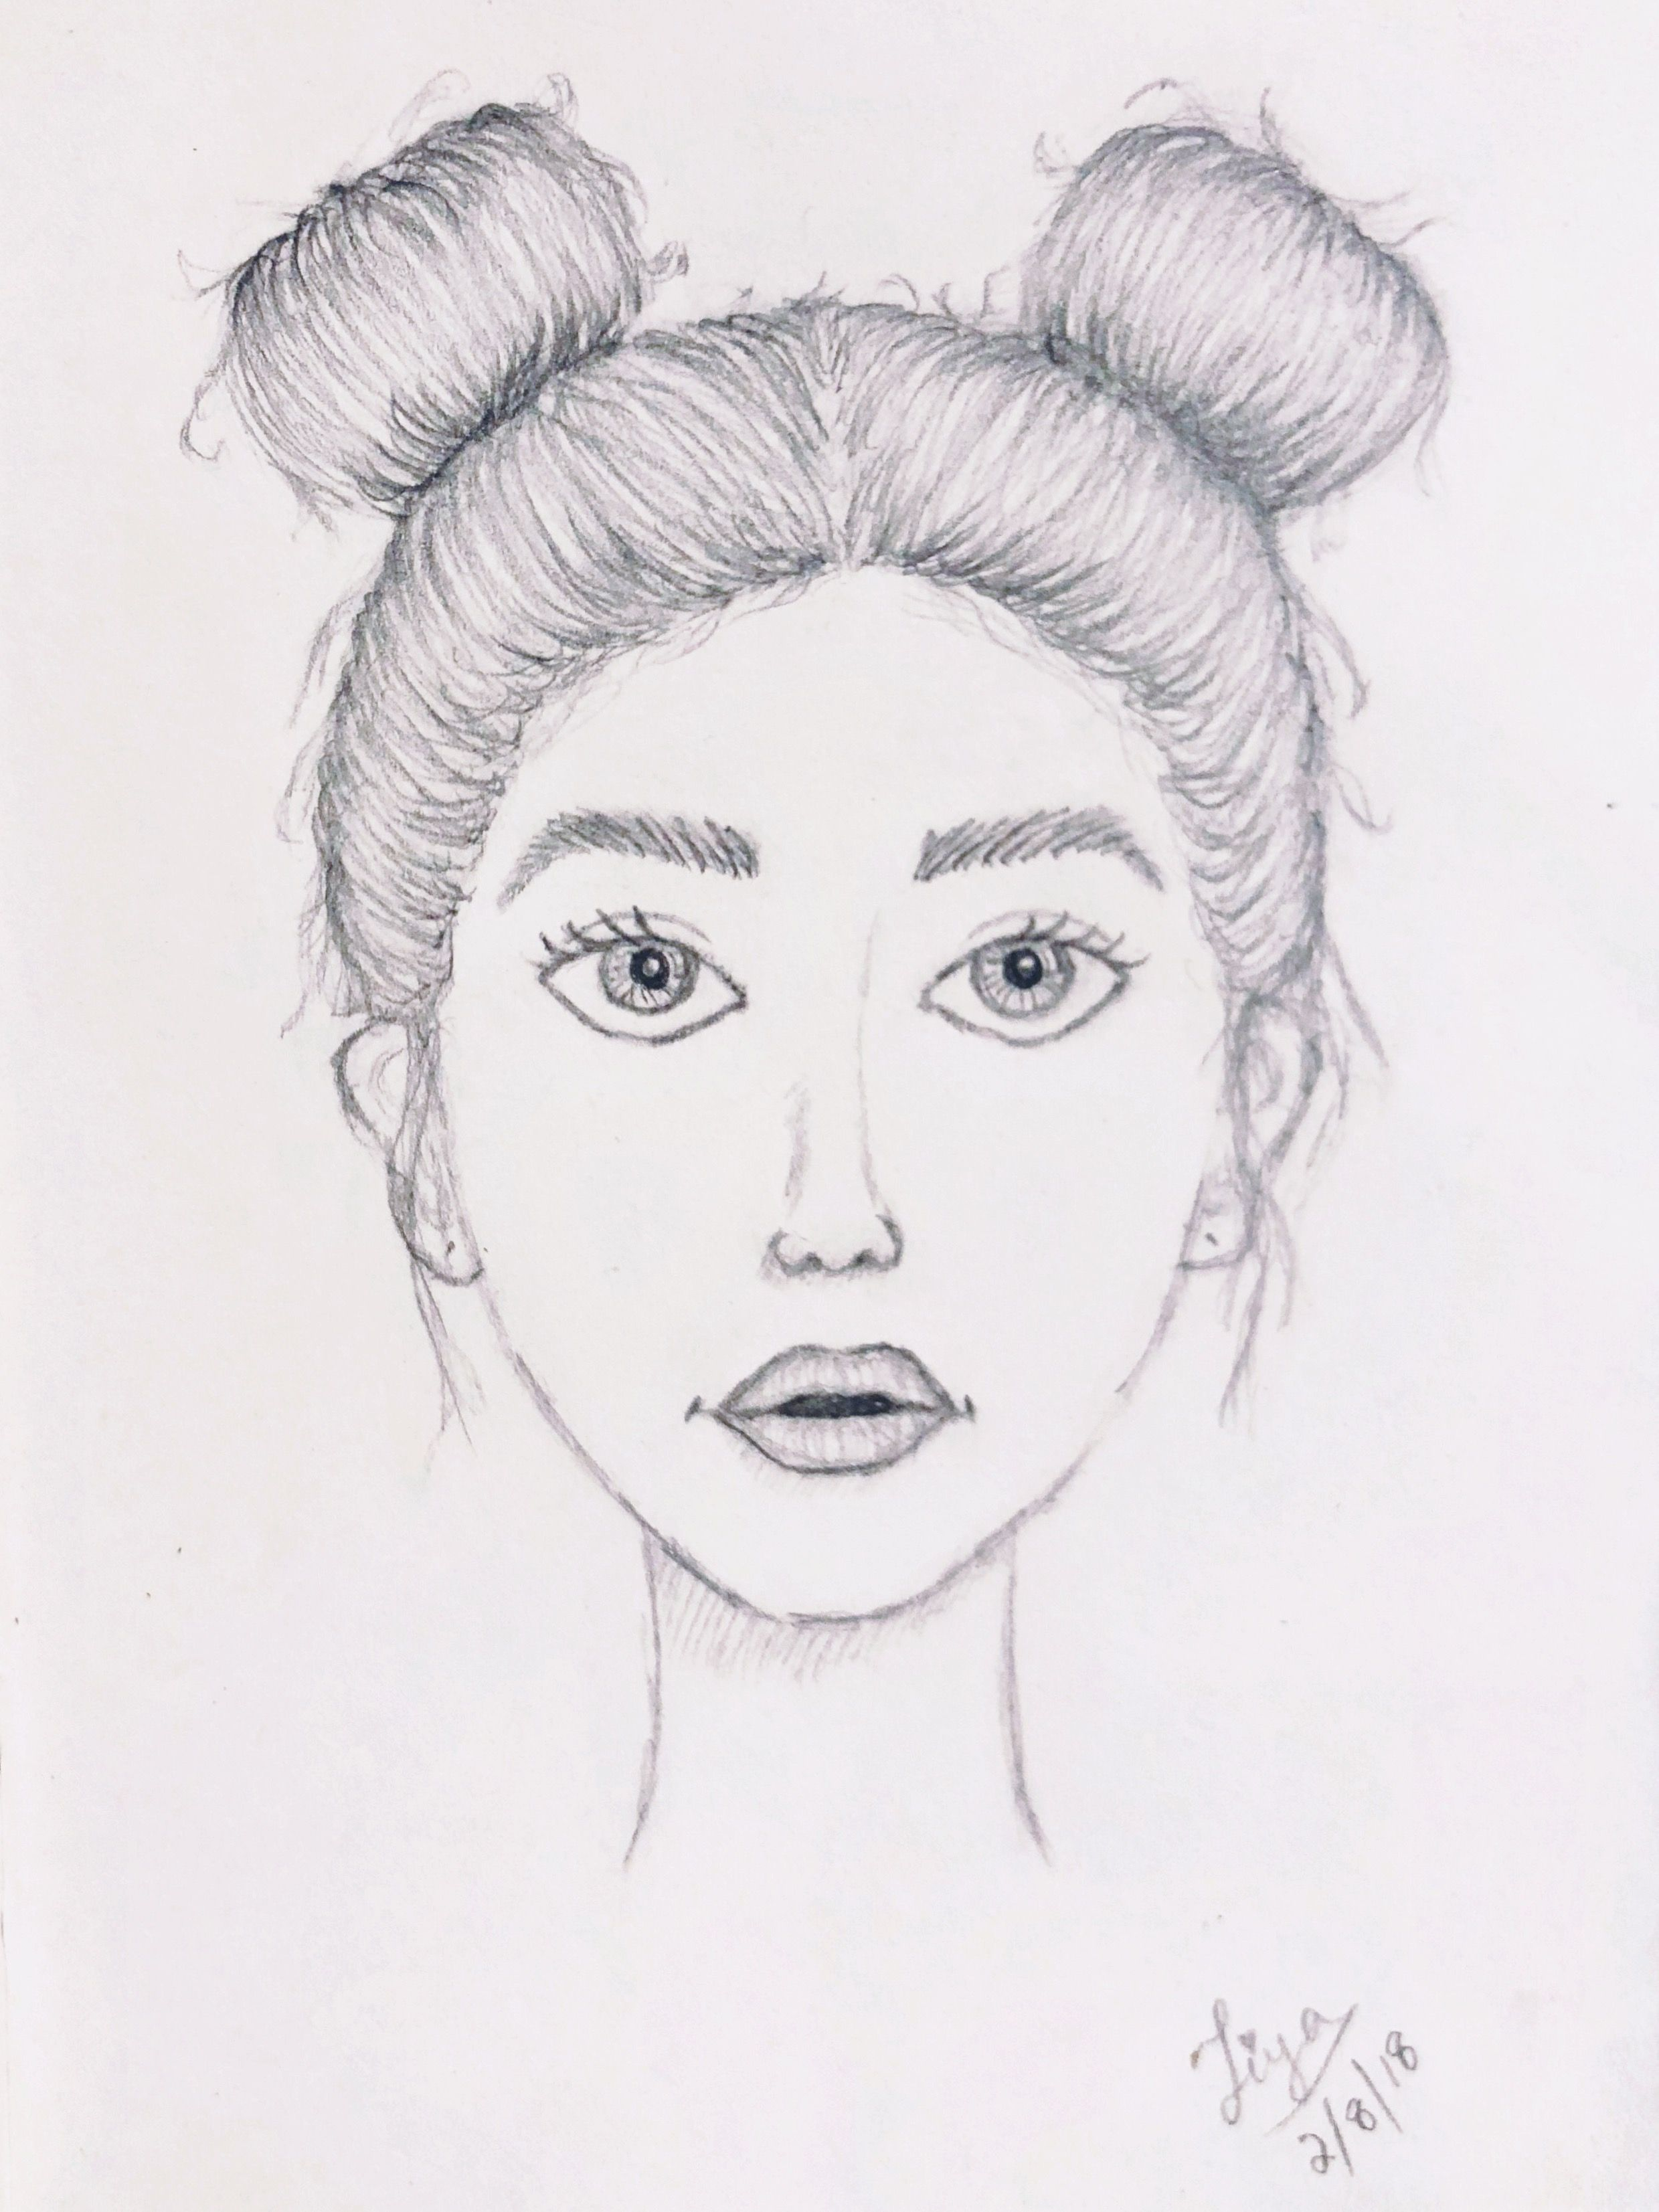 Character Design Sketch Girl Face Features With Space Buns Hairstyle Hair Drawing This Took Me A Wh Character Design Sketches Design Sketch Character Design